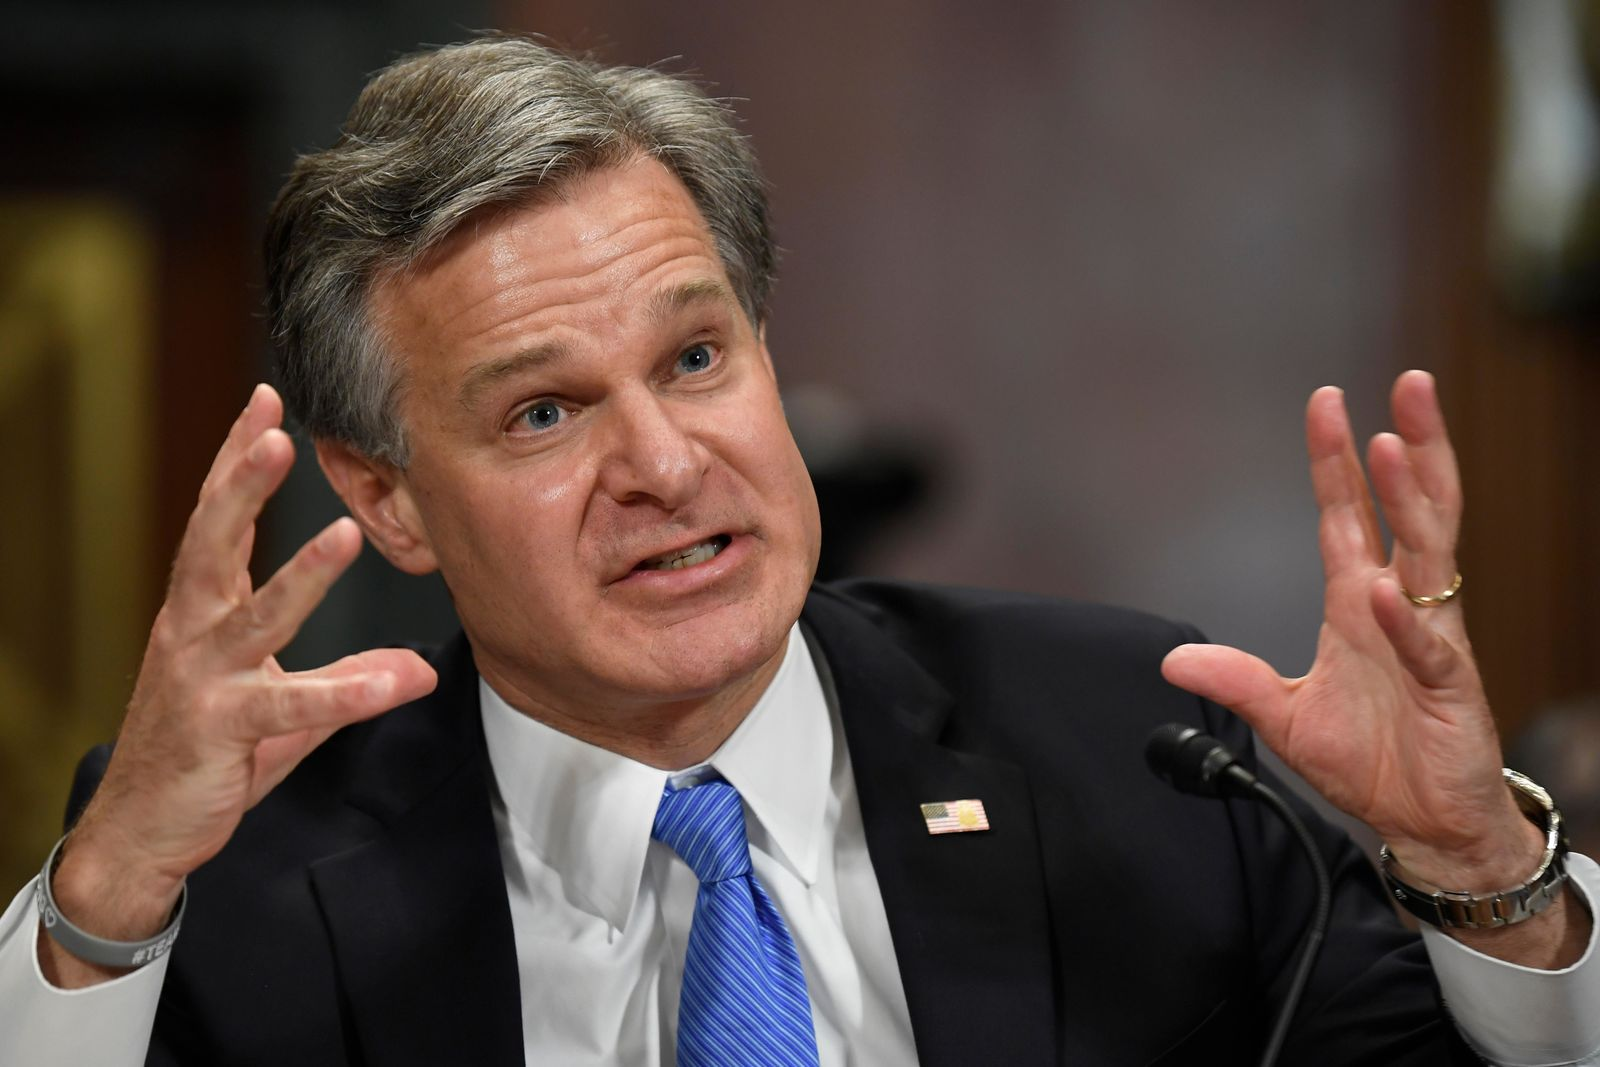 FBI Director Christopher Wray testifies before the Senate Judiciary Committee on Capitol Hill in Washington, Tuesday, July 23, 2019.{ } (AP Photo/Susan Walsh)